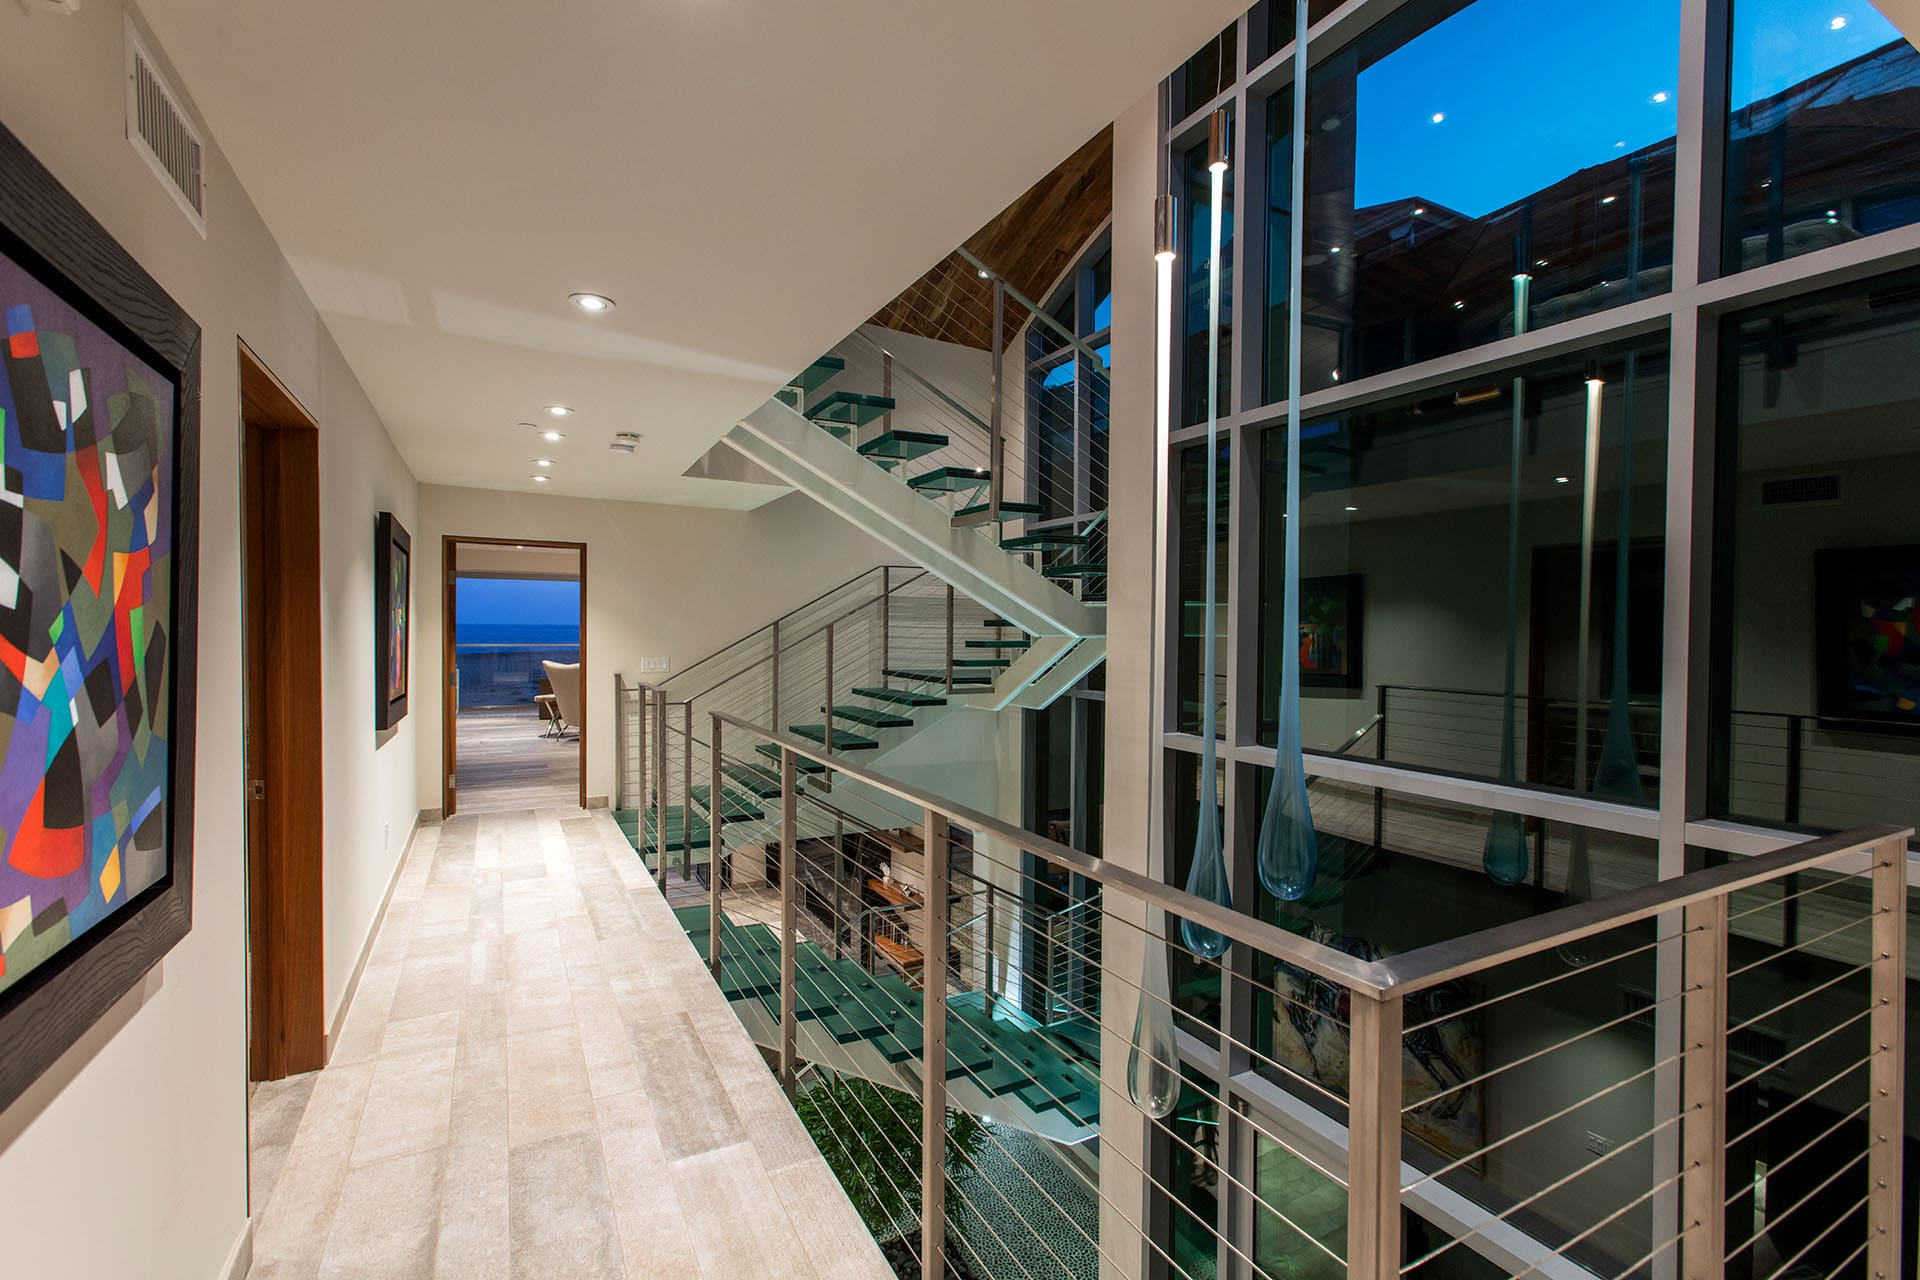 Newport Beach - Contemporary Beach House Stairs by Oatman Architects